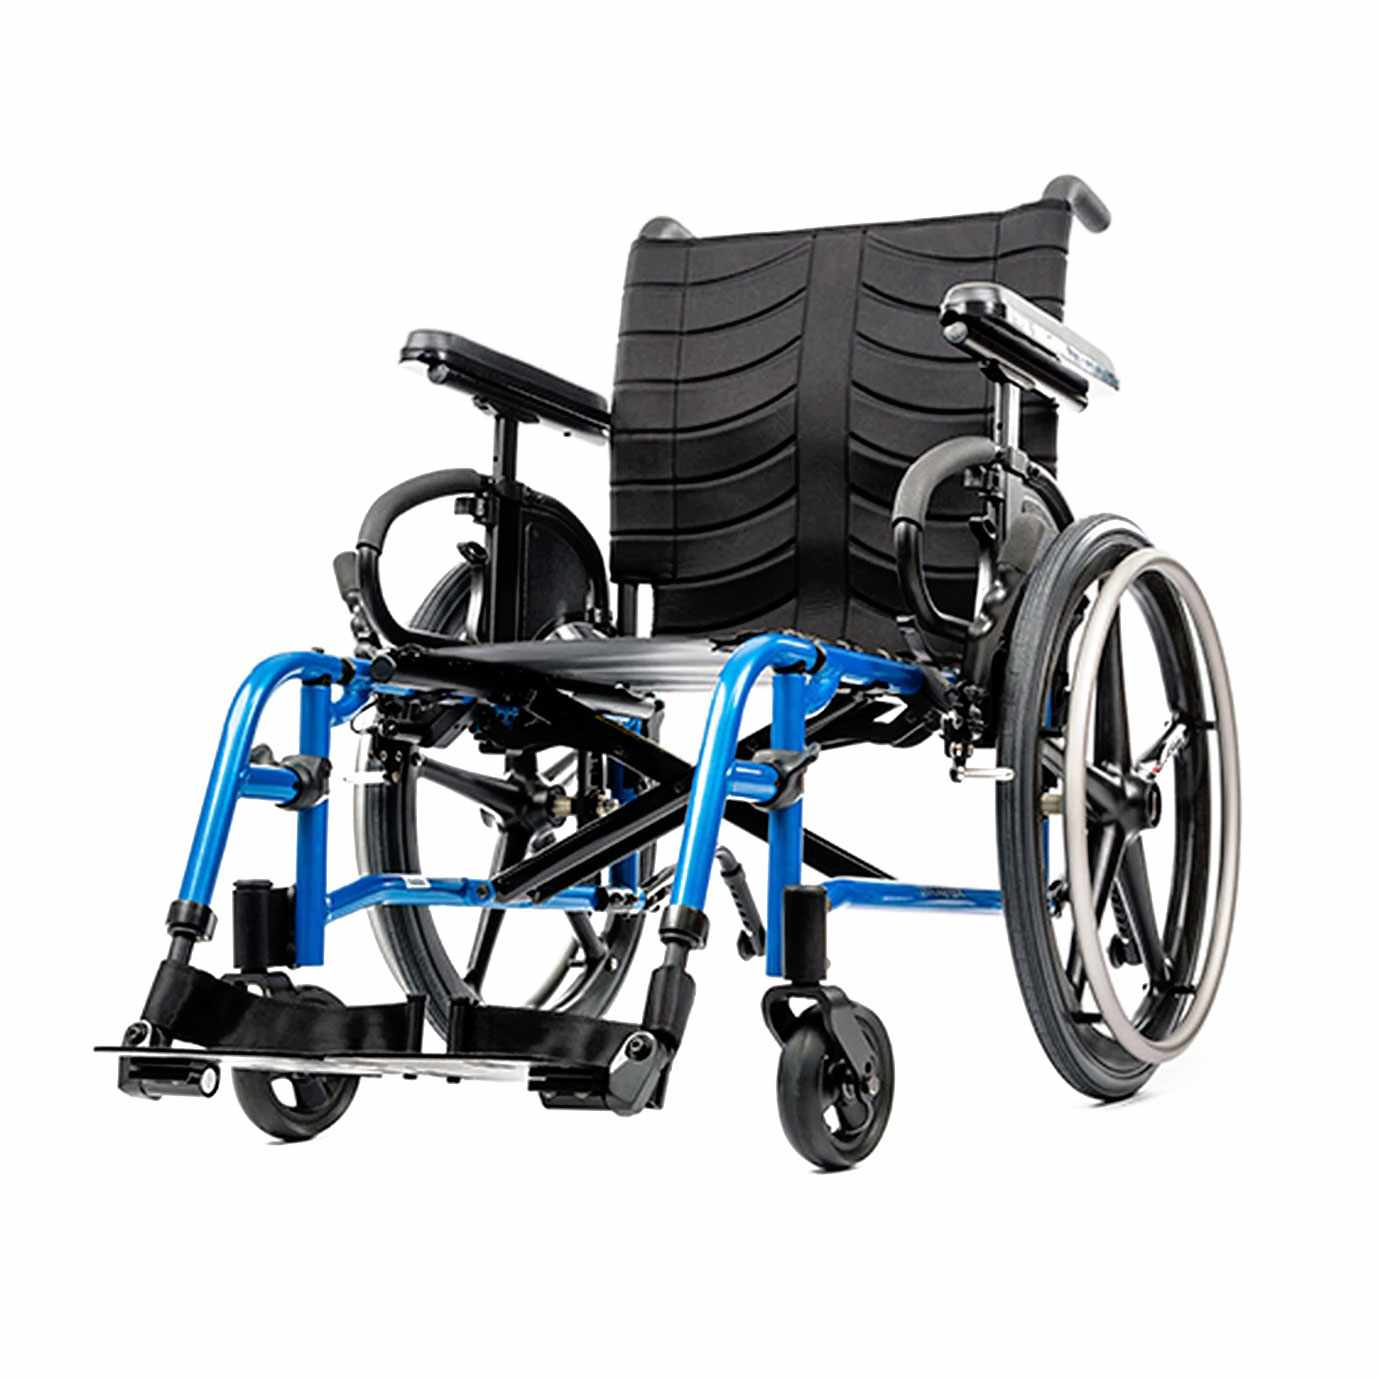 Quickie QXi ultra lightweight folding manual wheelchair